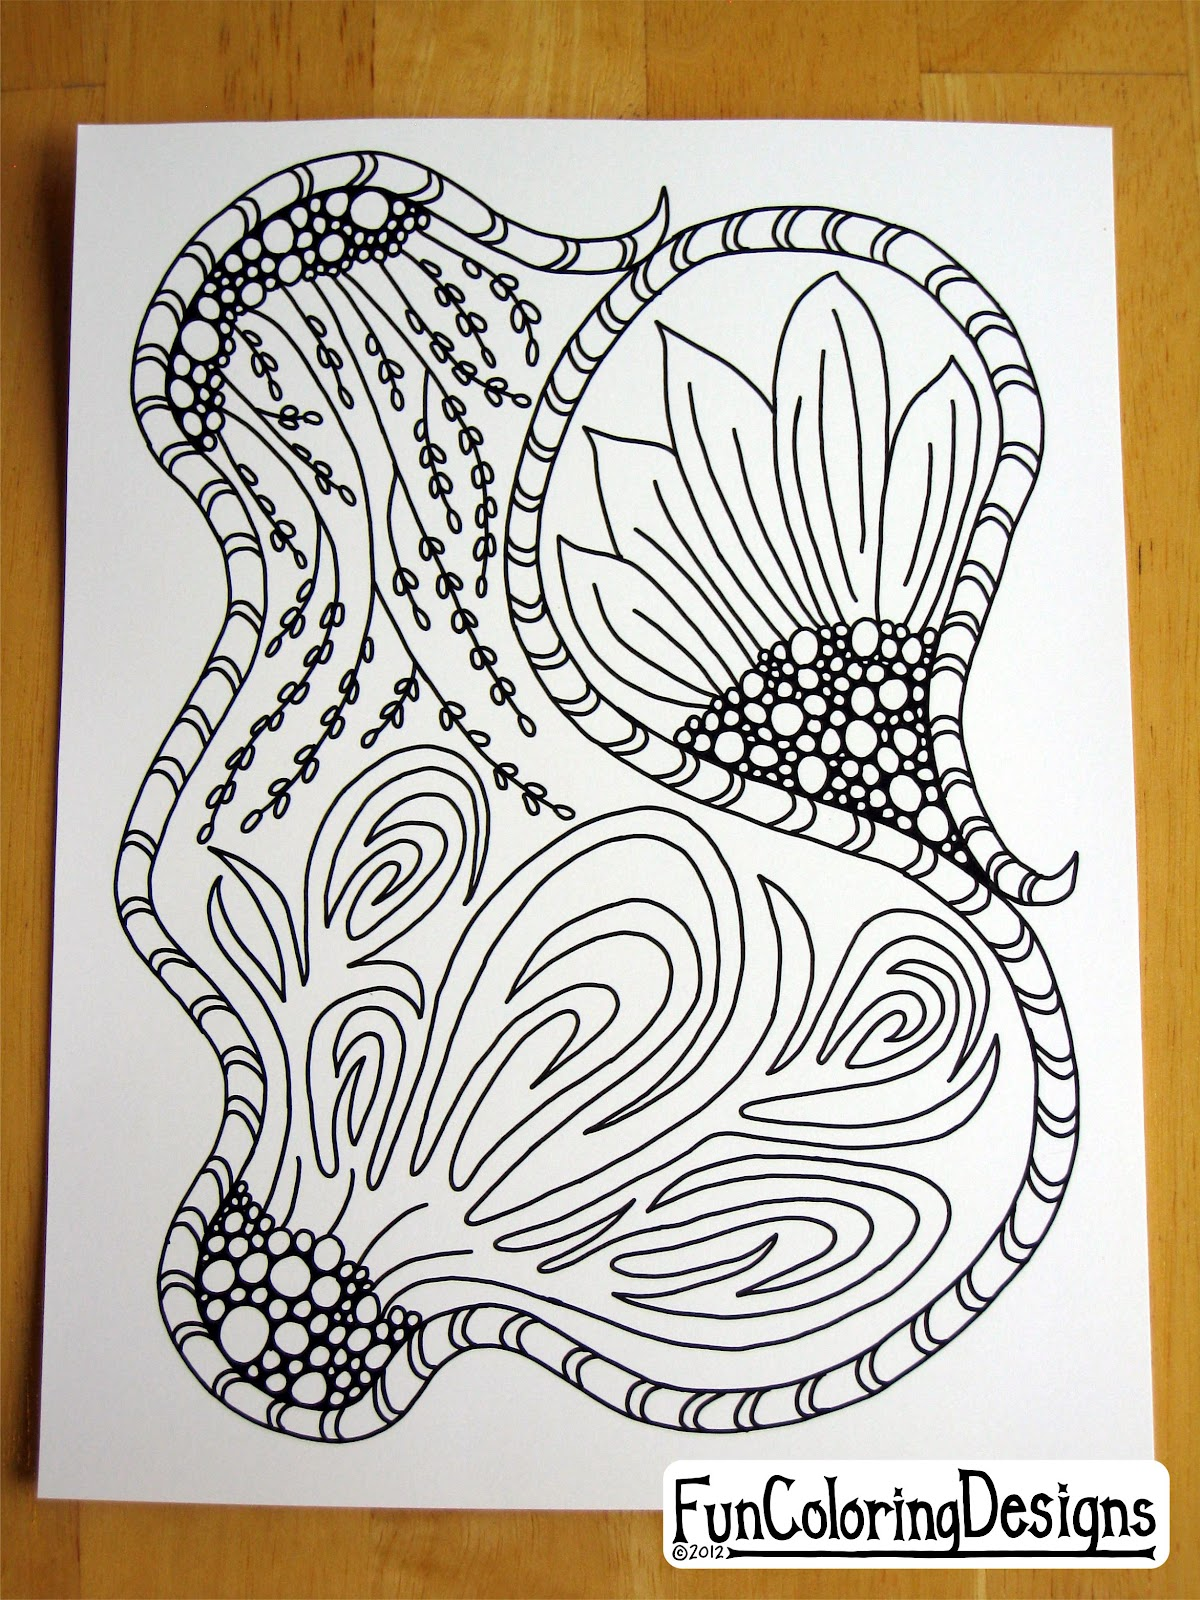 My First Zentangle | Fun Coloring Designs